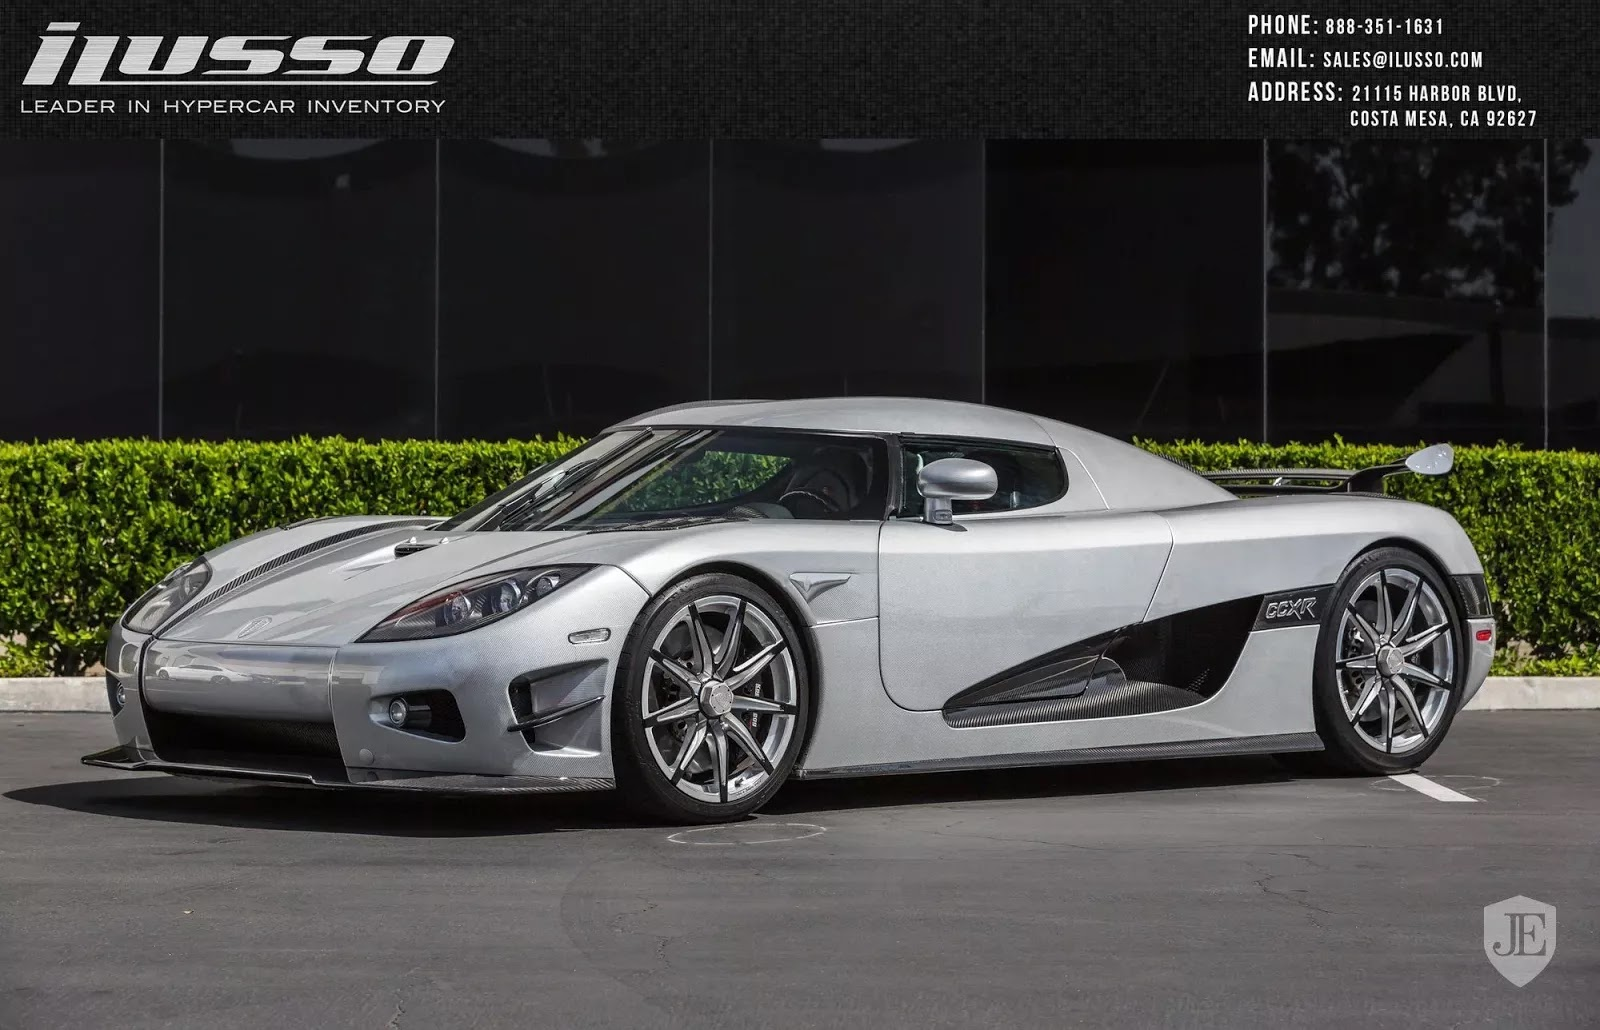 Mayweather's Old Koenigsegg CCXR Trevita For Sale Again | Carscoops